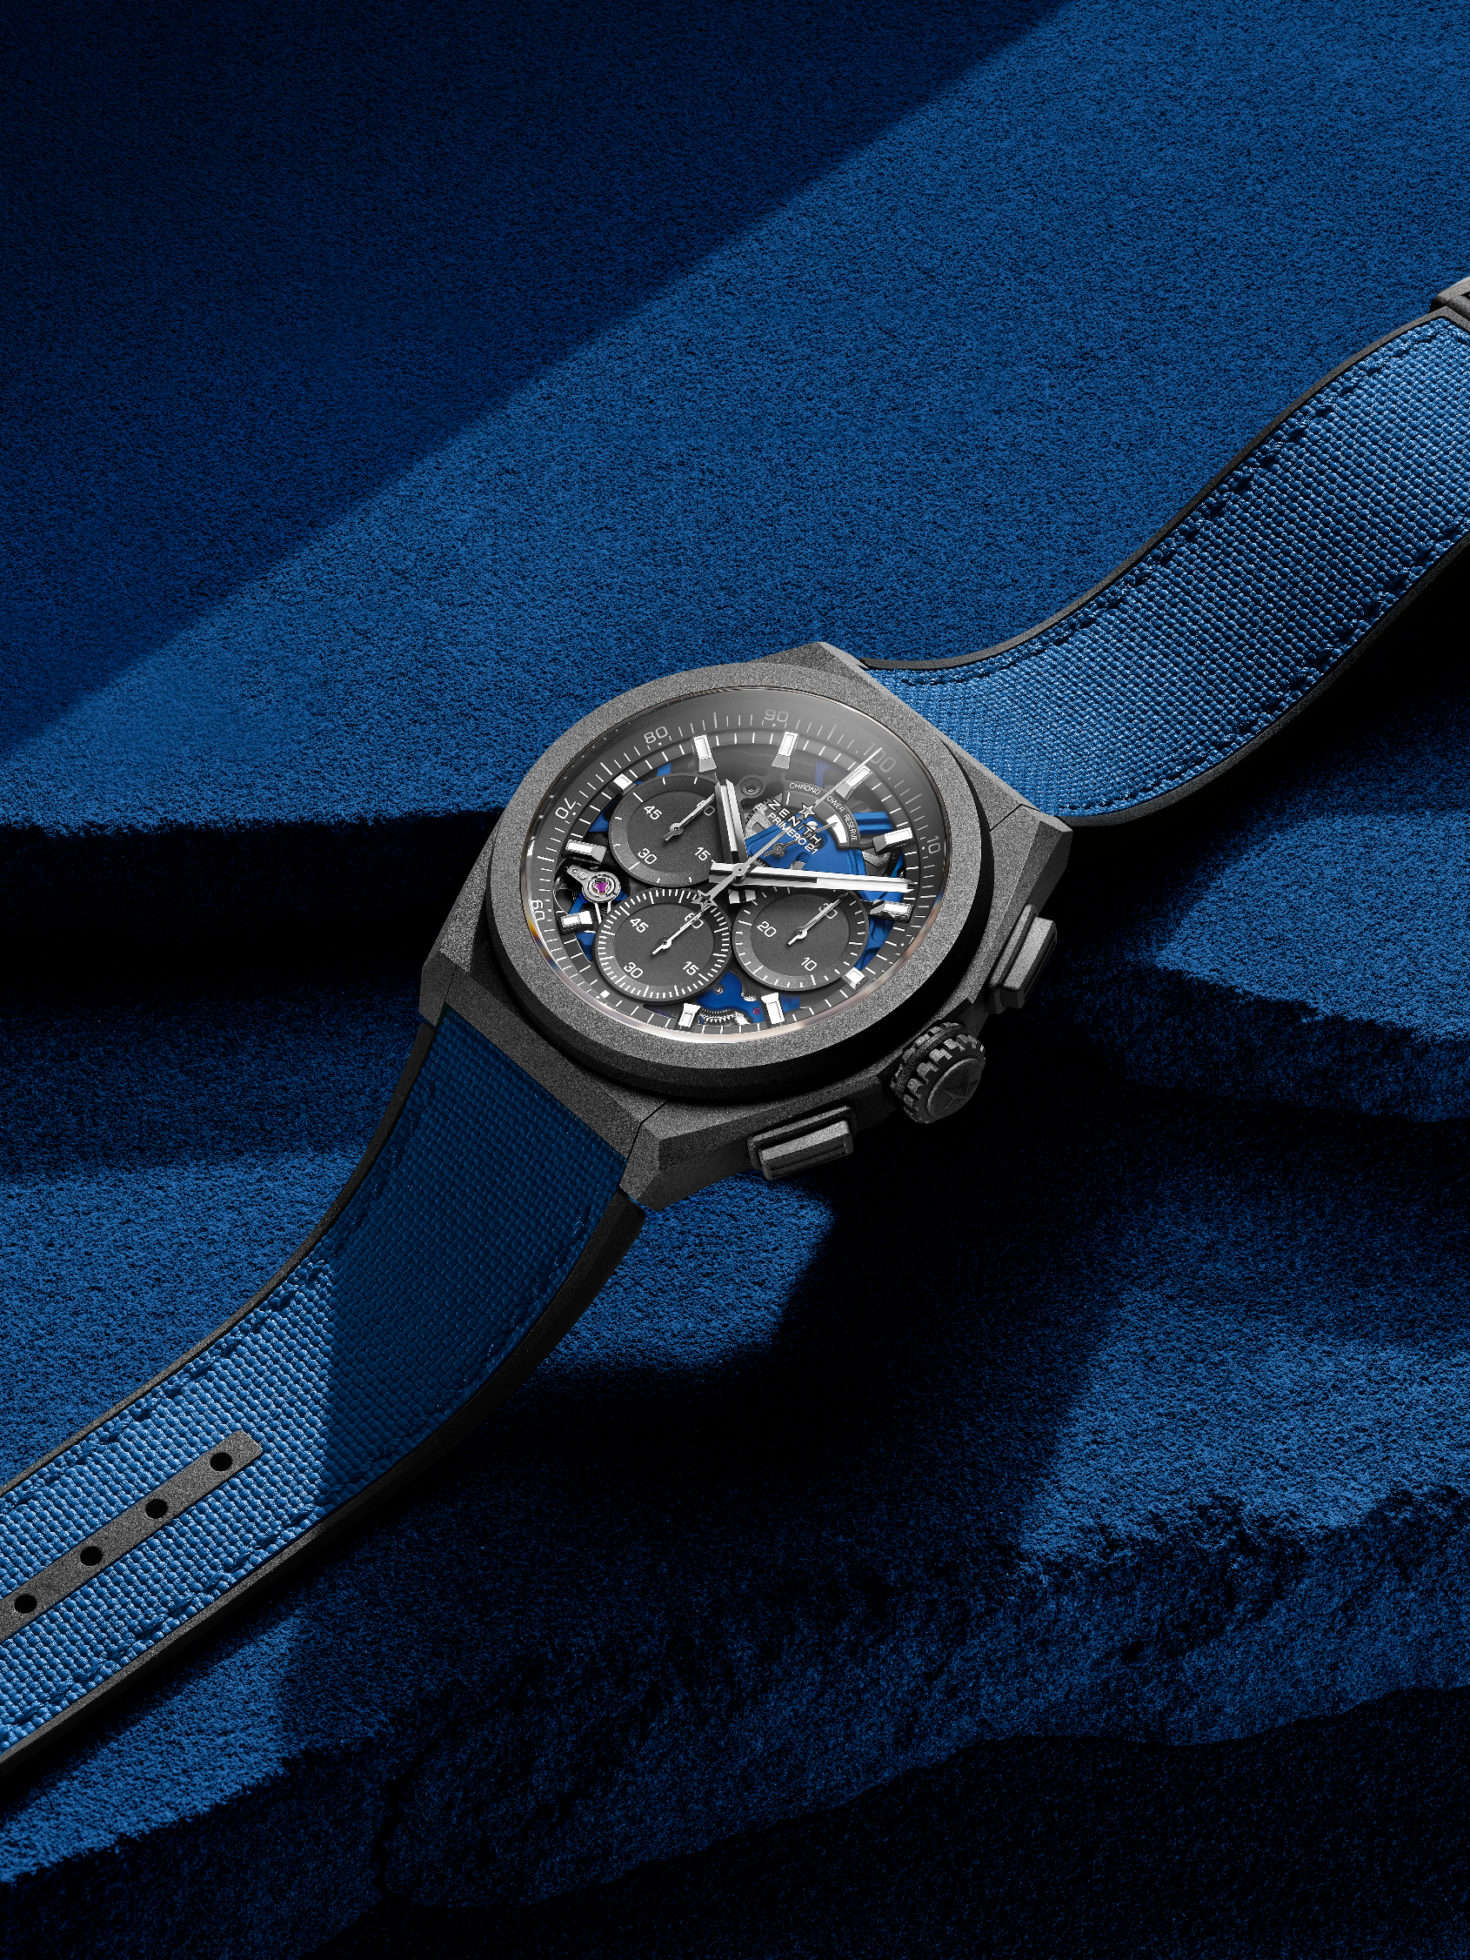 INTRODUCING: The Zenith DEFY 21 Ultrablue adds a touch of indigo to a high-tech tour de force